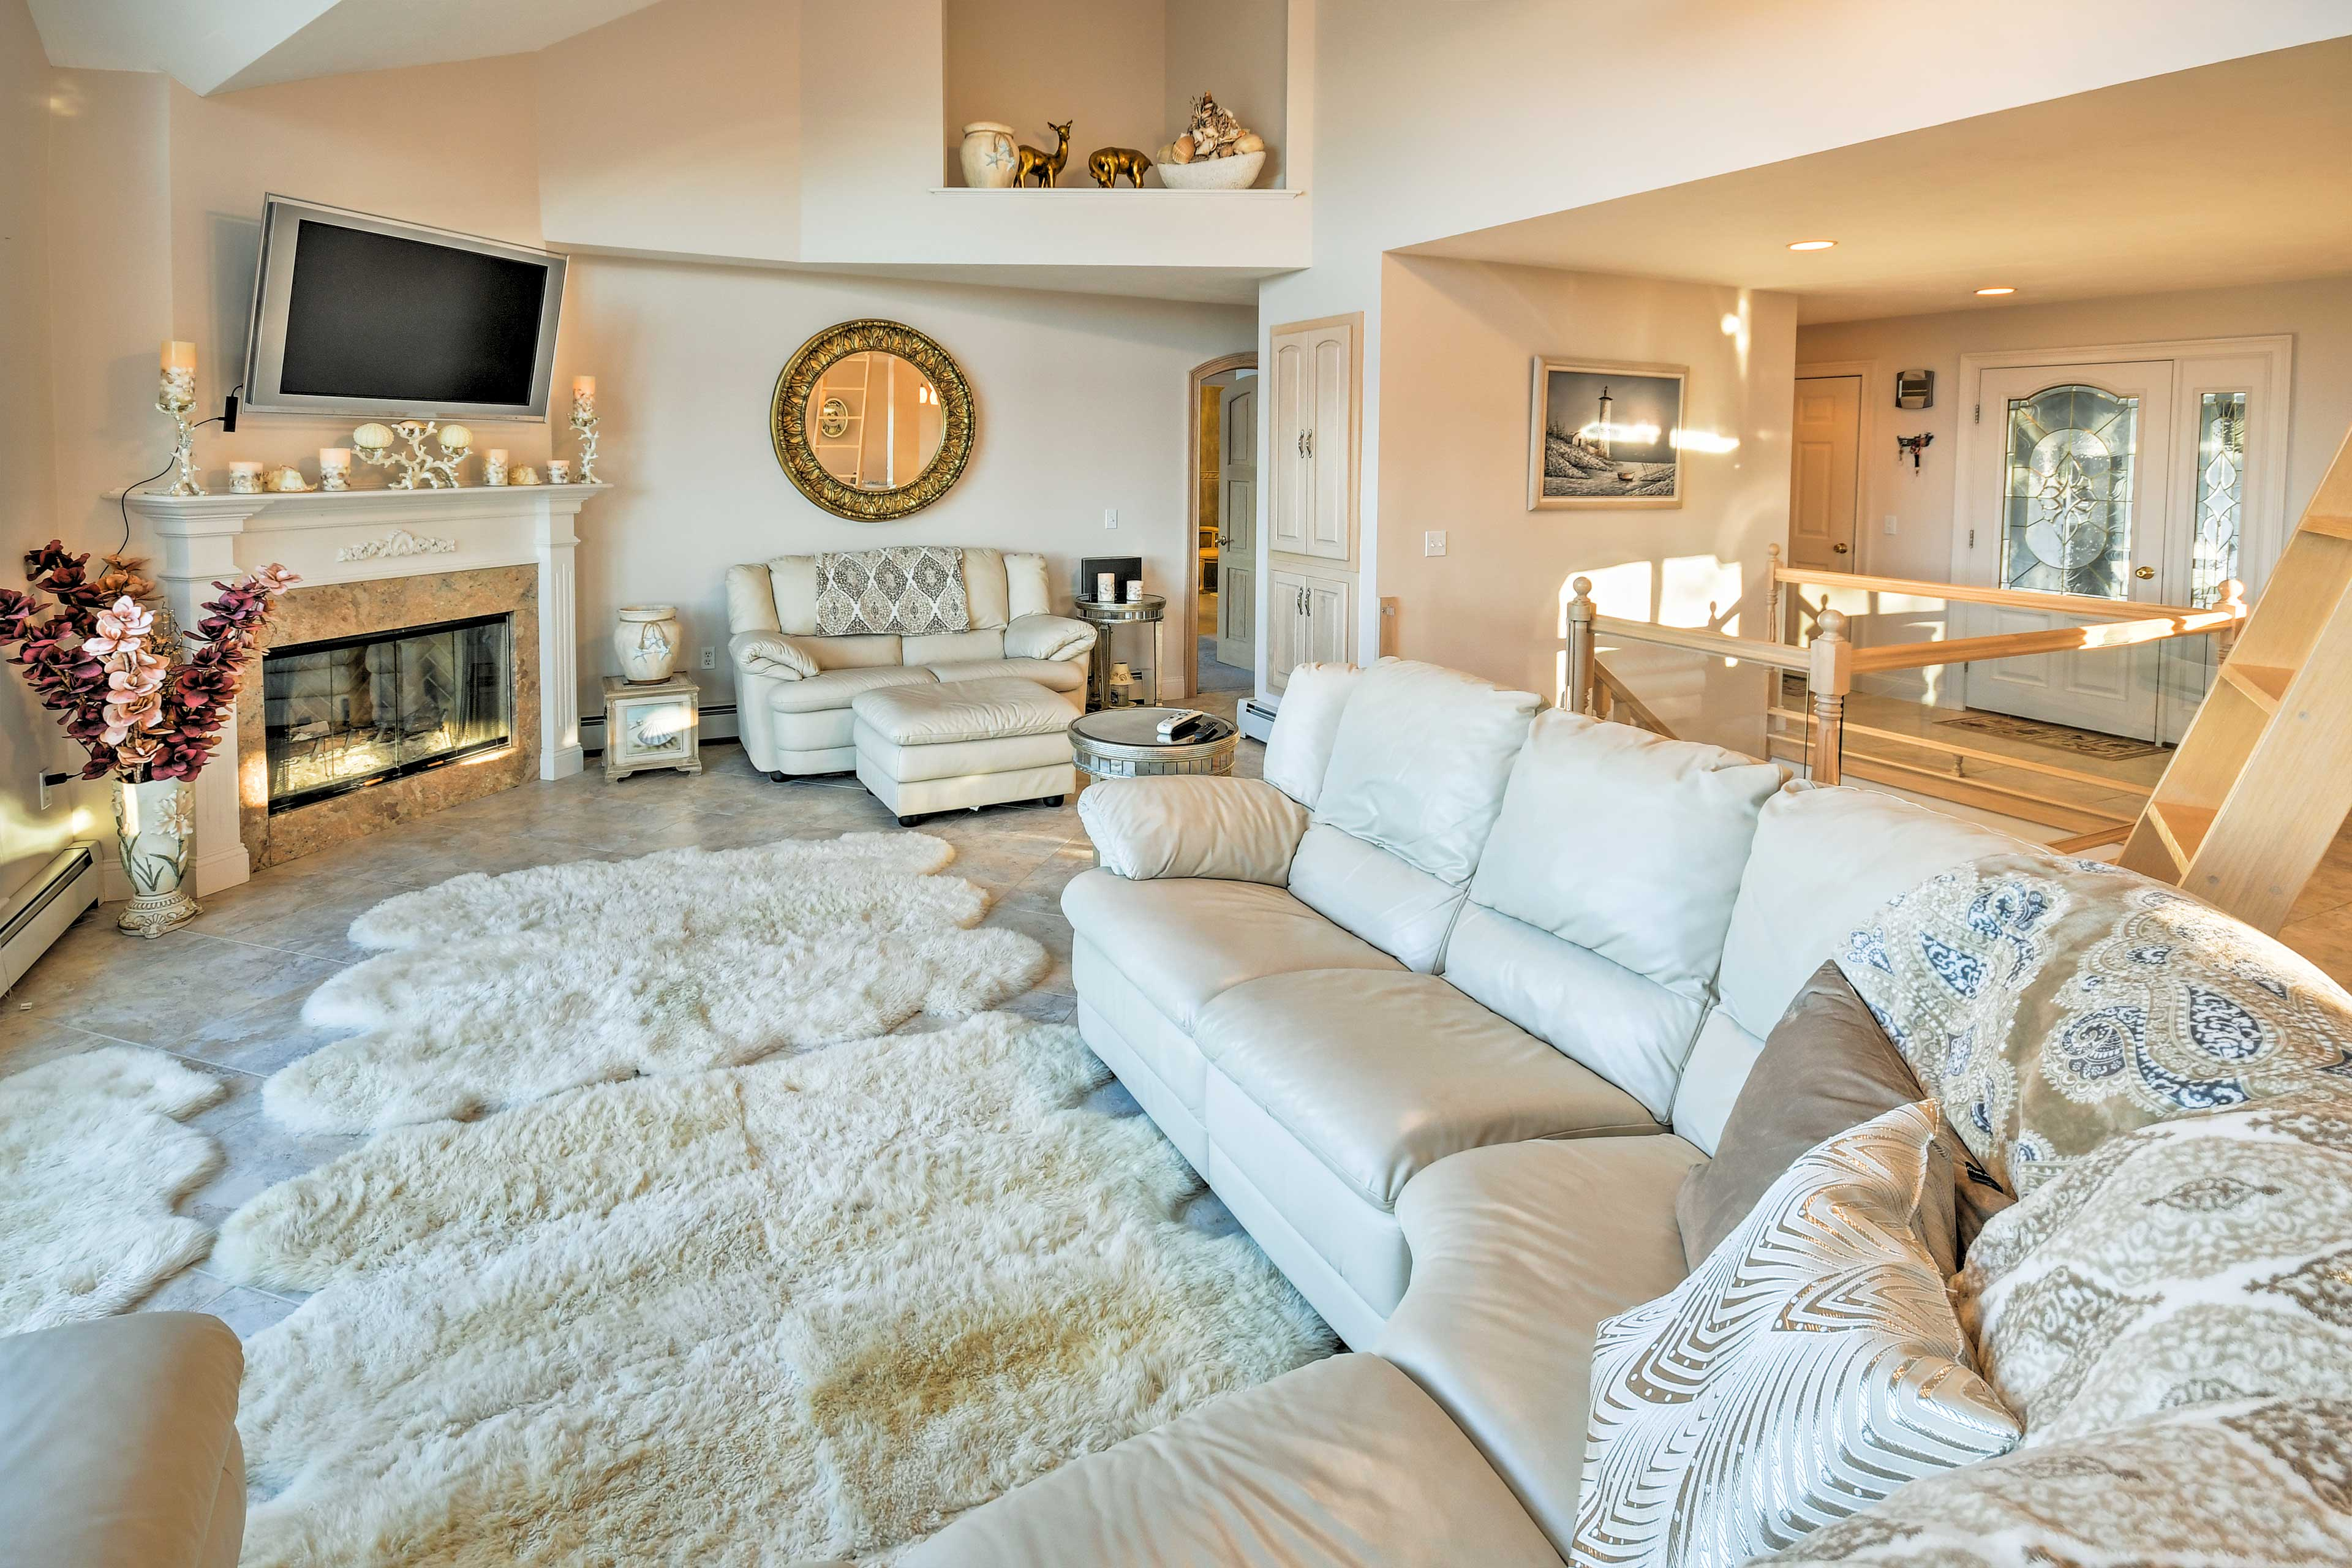 Warm up around the wood-burning fireplace in the living room as a movie plays.